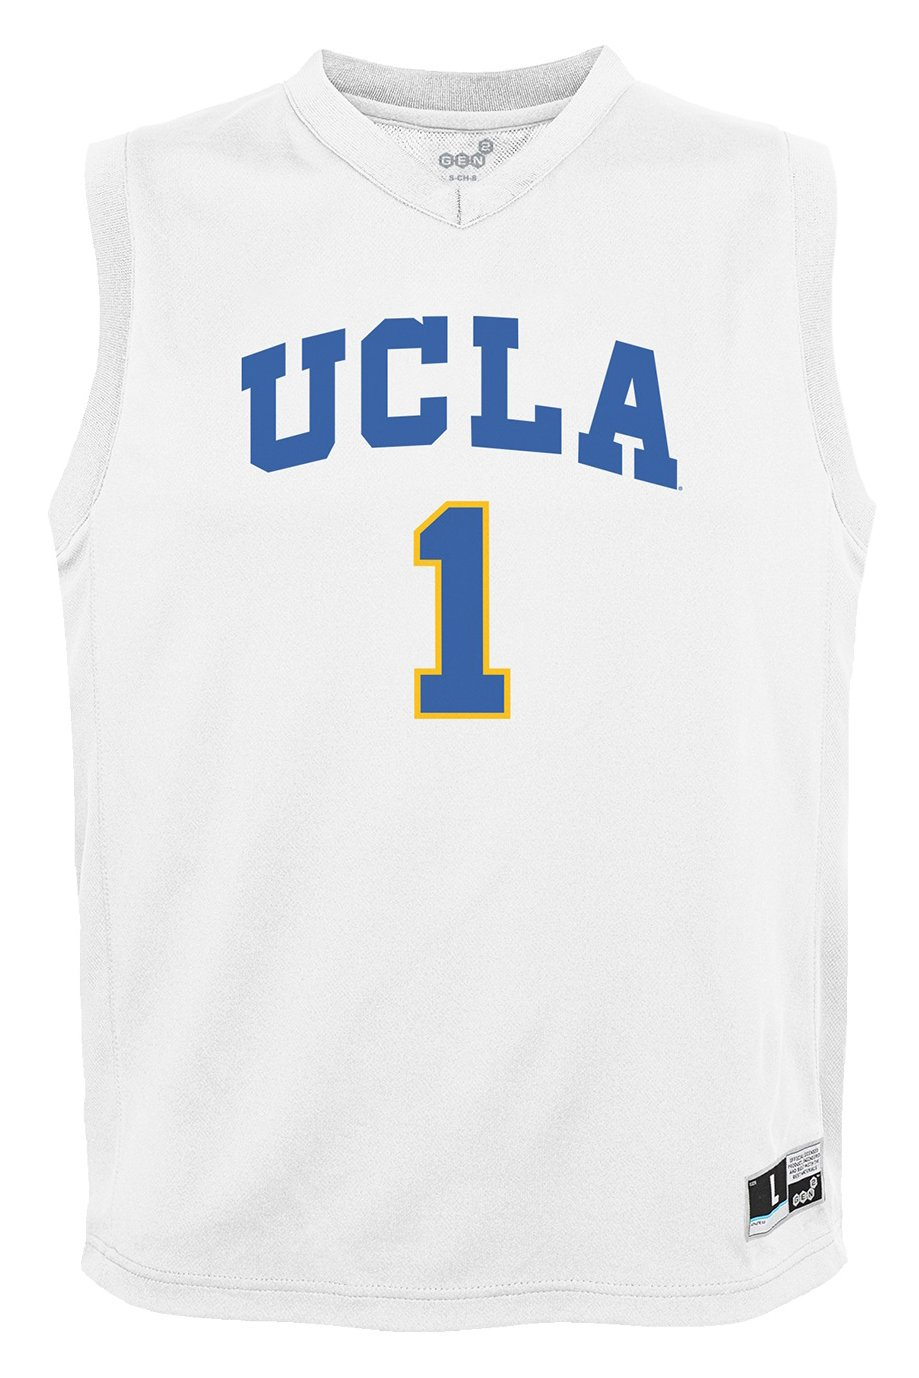 10-12 White Youth Medium NCAA by Outerstuff NCAA Ucla Bruins Youth boys Chase Basketball Jersey